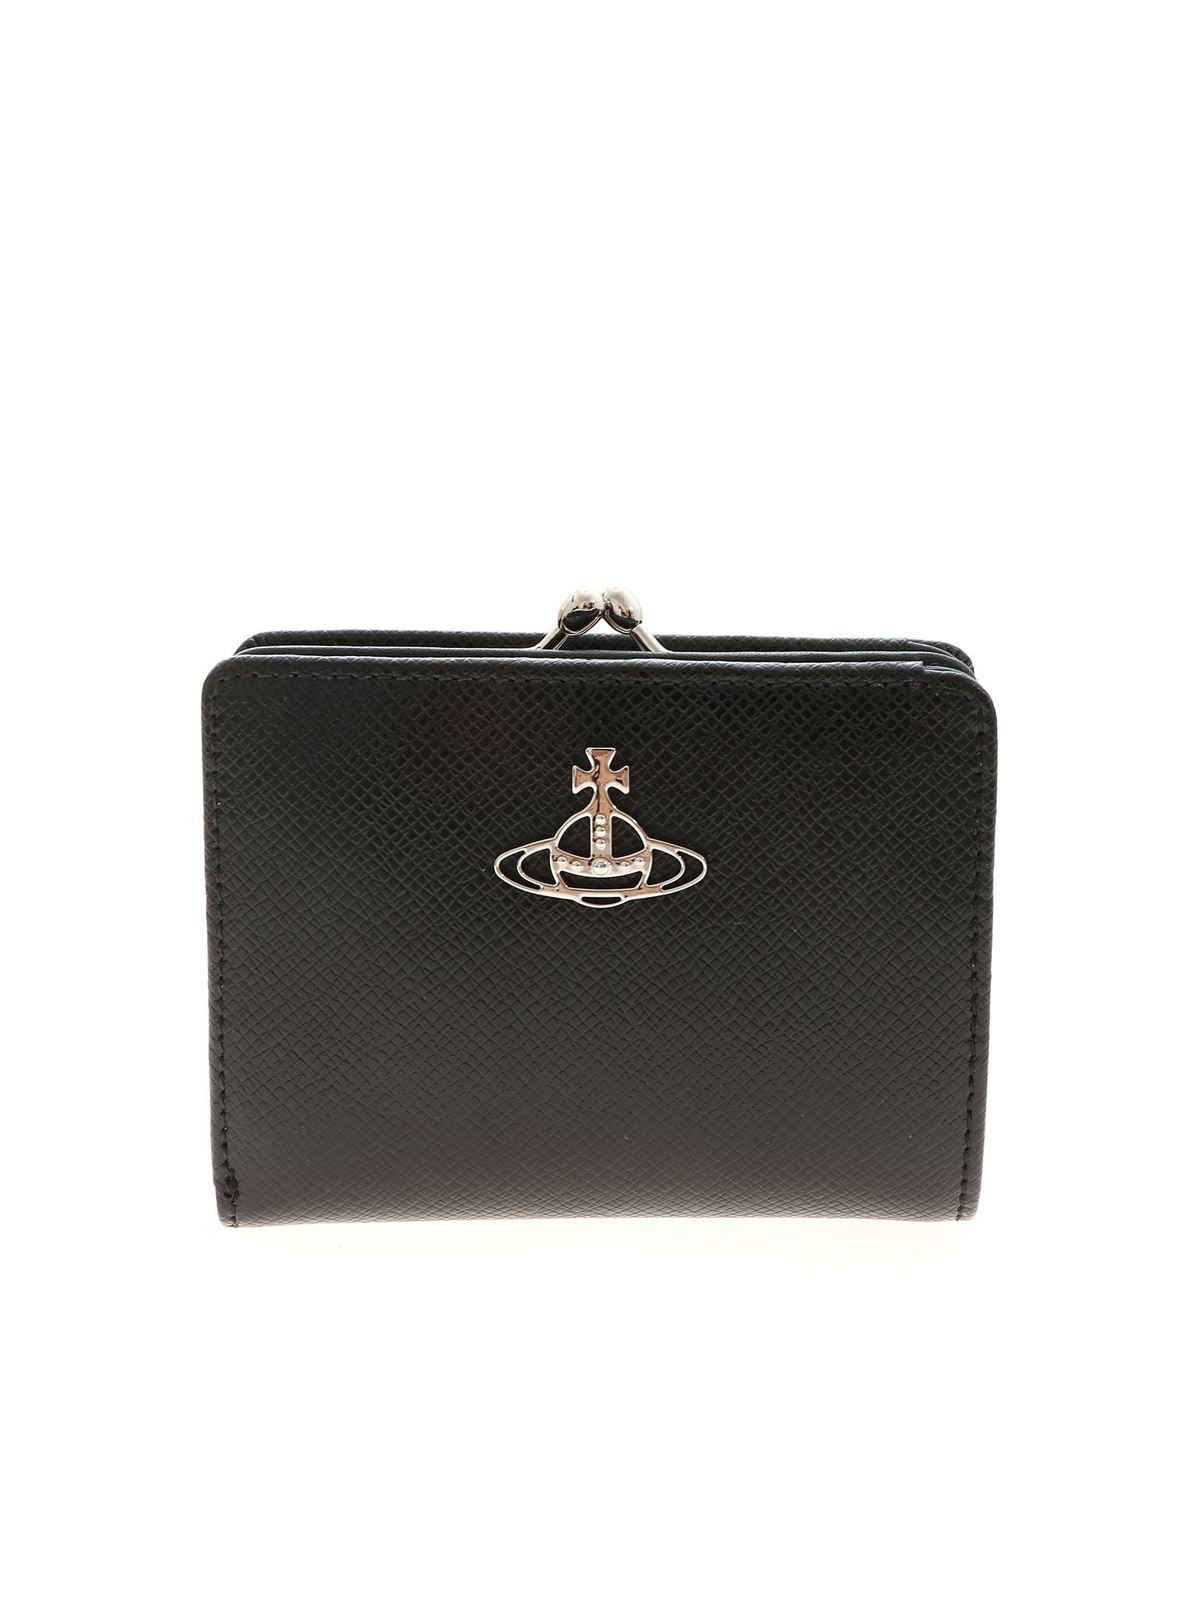 Vivienne Westwood DEBBIE WALLET IN BLACK